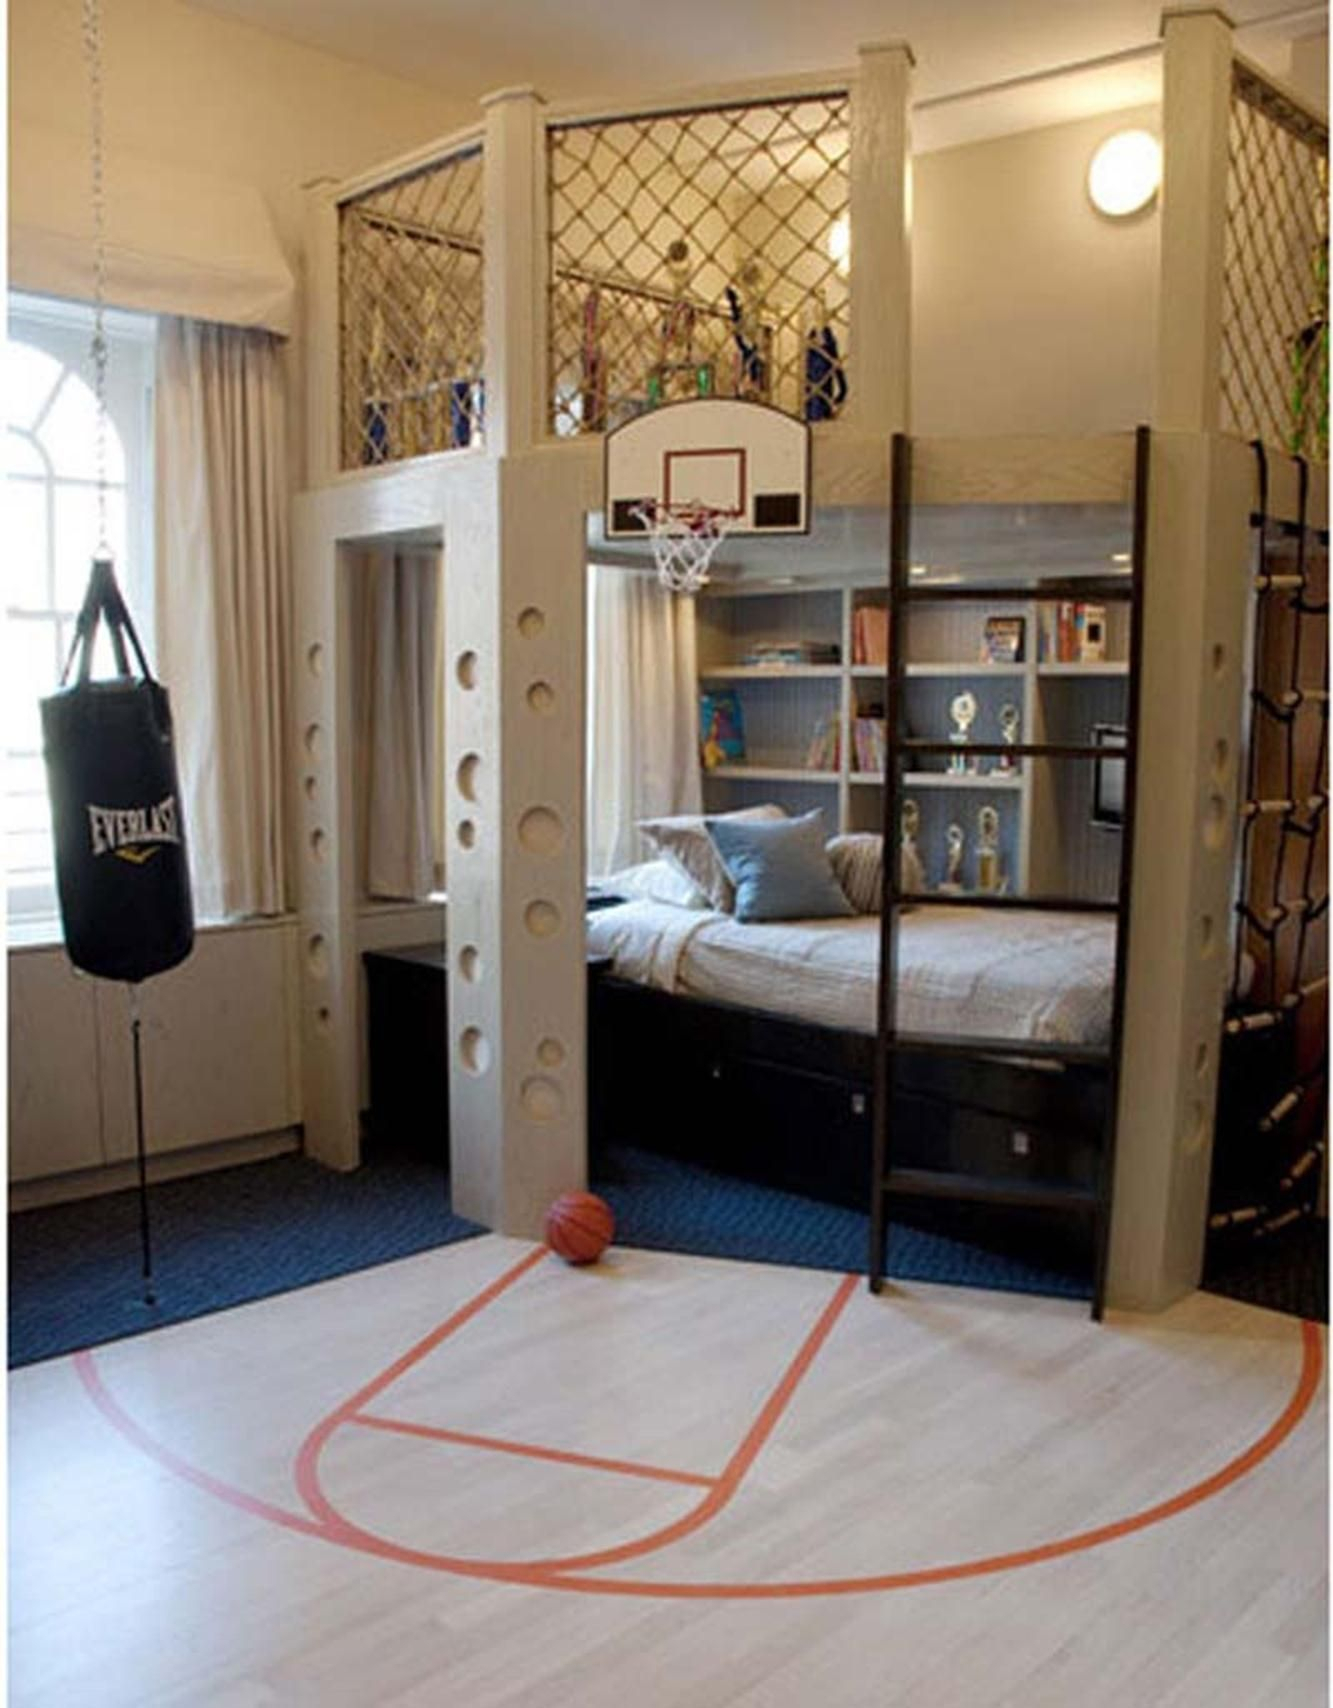 10 Spectacular Creative Ideas For Small Bedrooms creative bedroom ideas small rooms malaki and damien cool boys